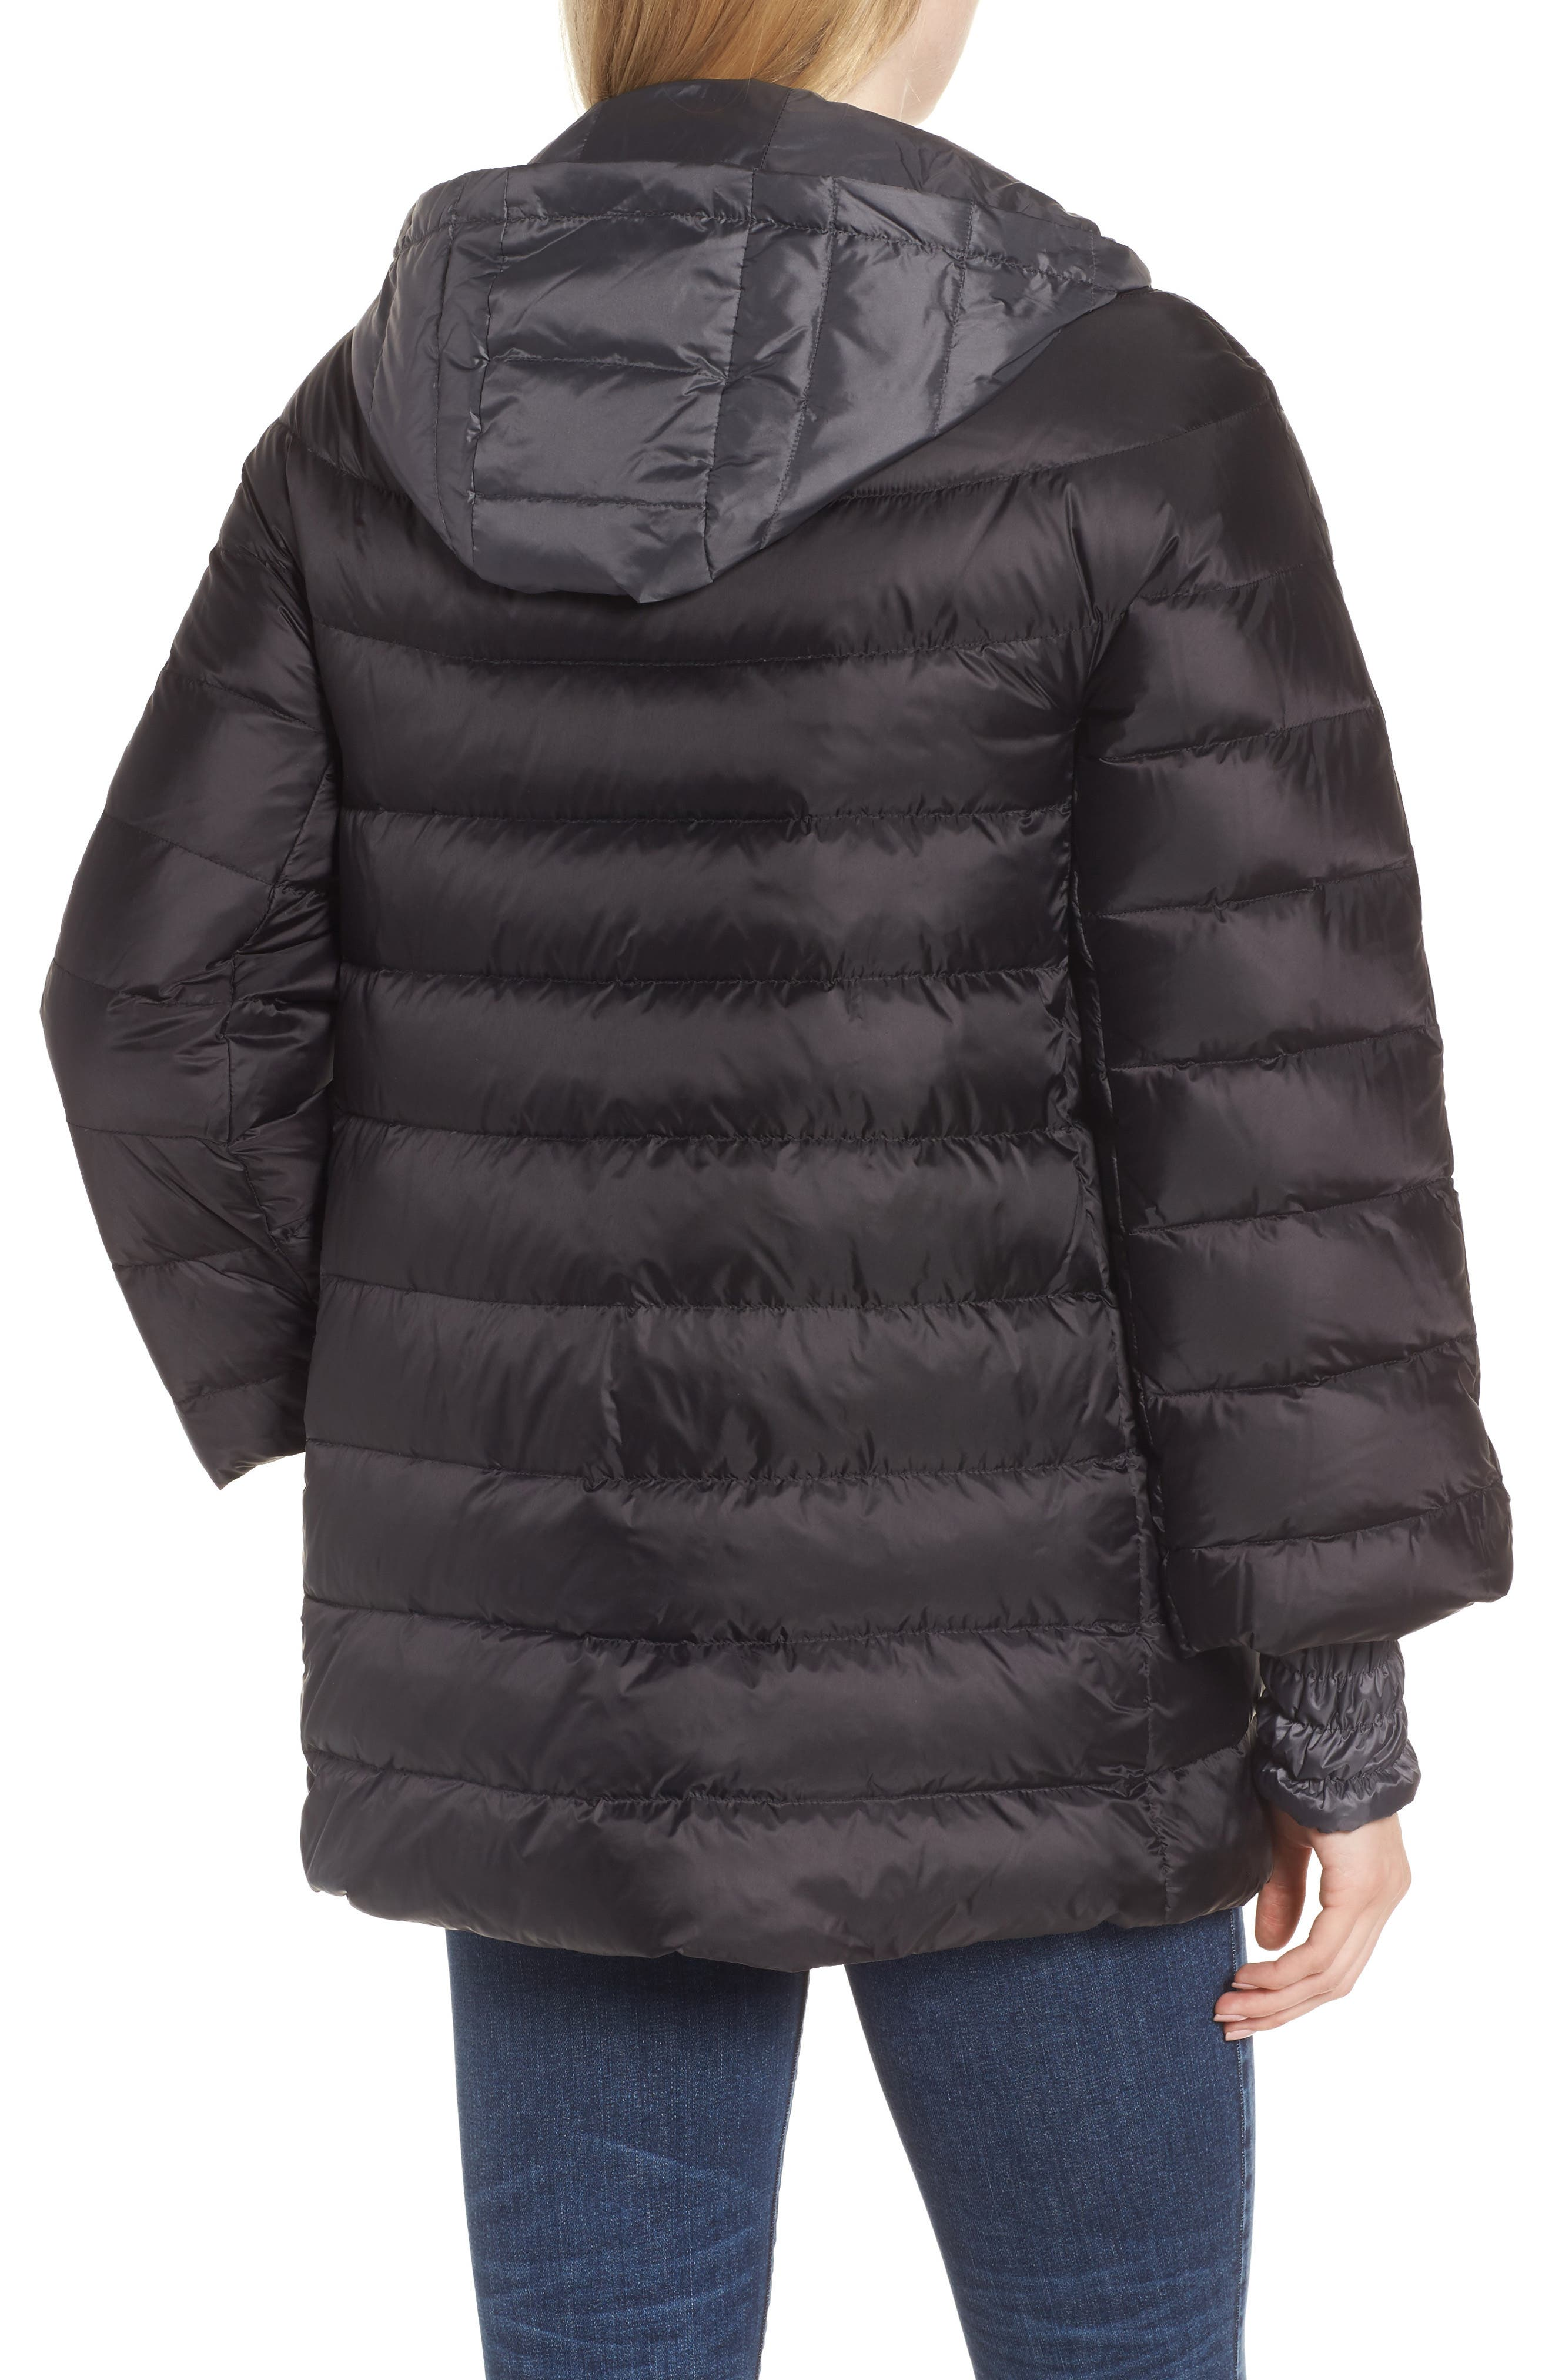 3-in-1 Layered Packable Quilted Down Coat,                             Alternate thumbnail 5, color,